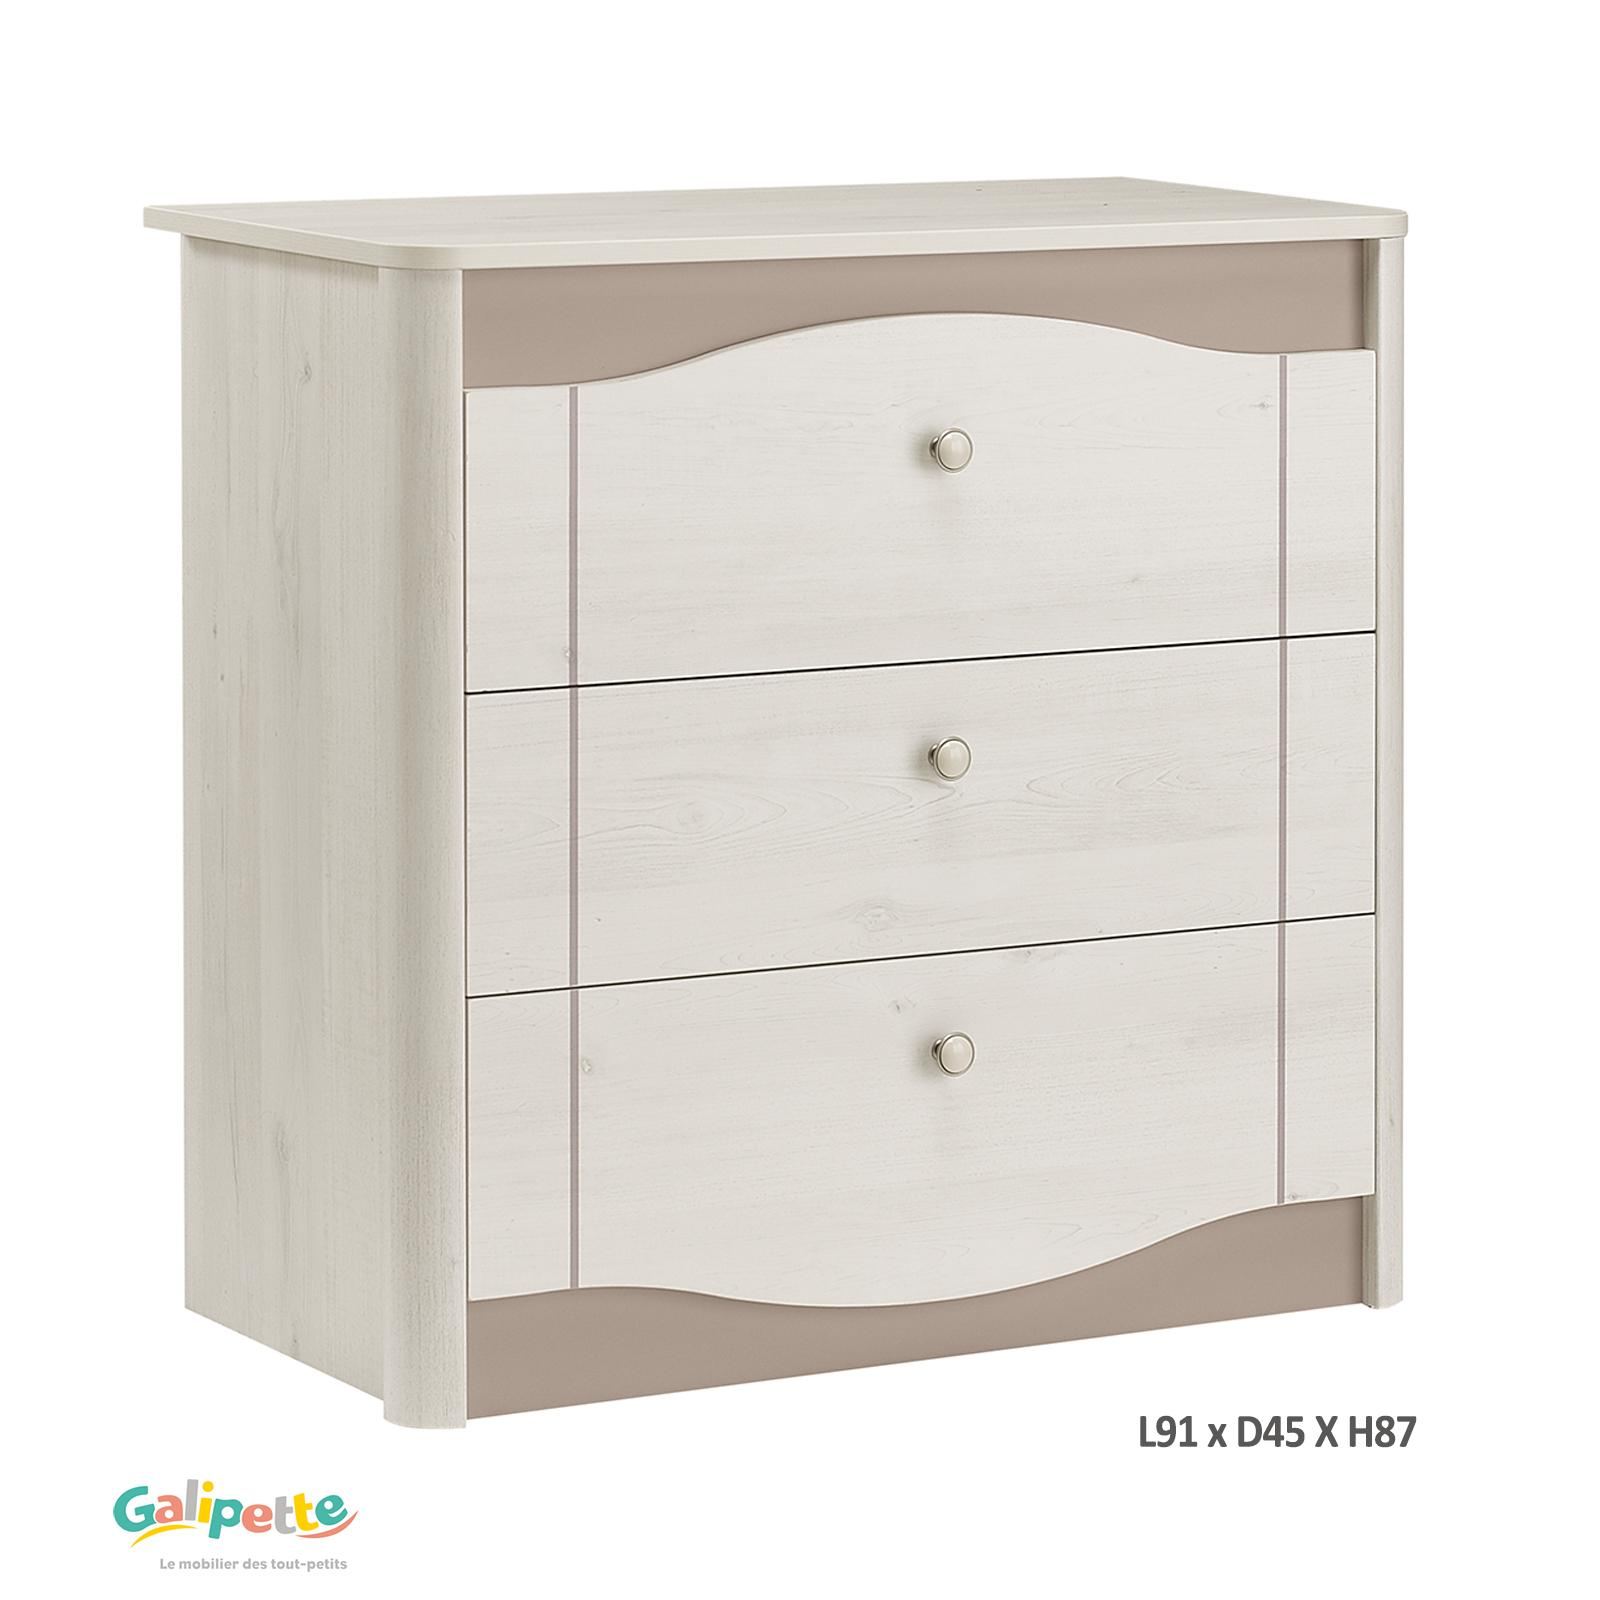 Galipette Chest of Drawers - Meline